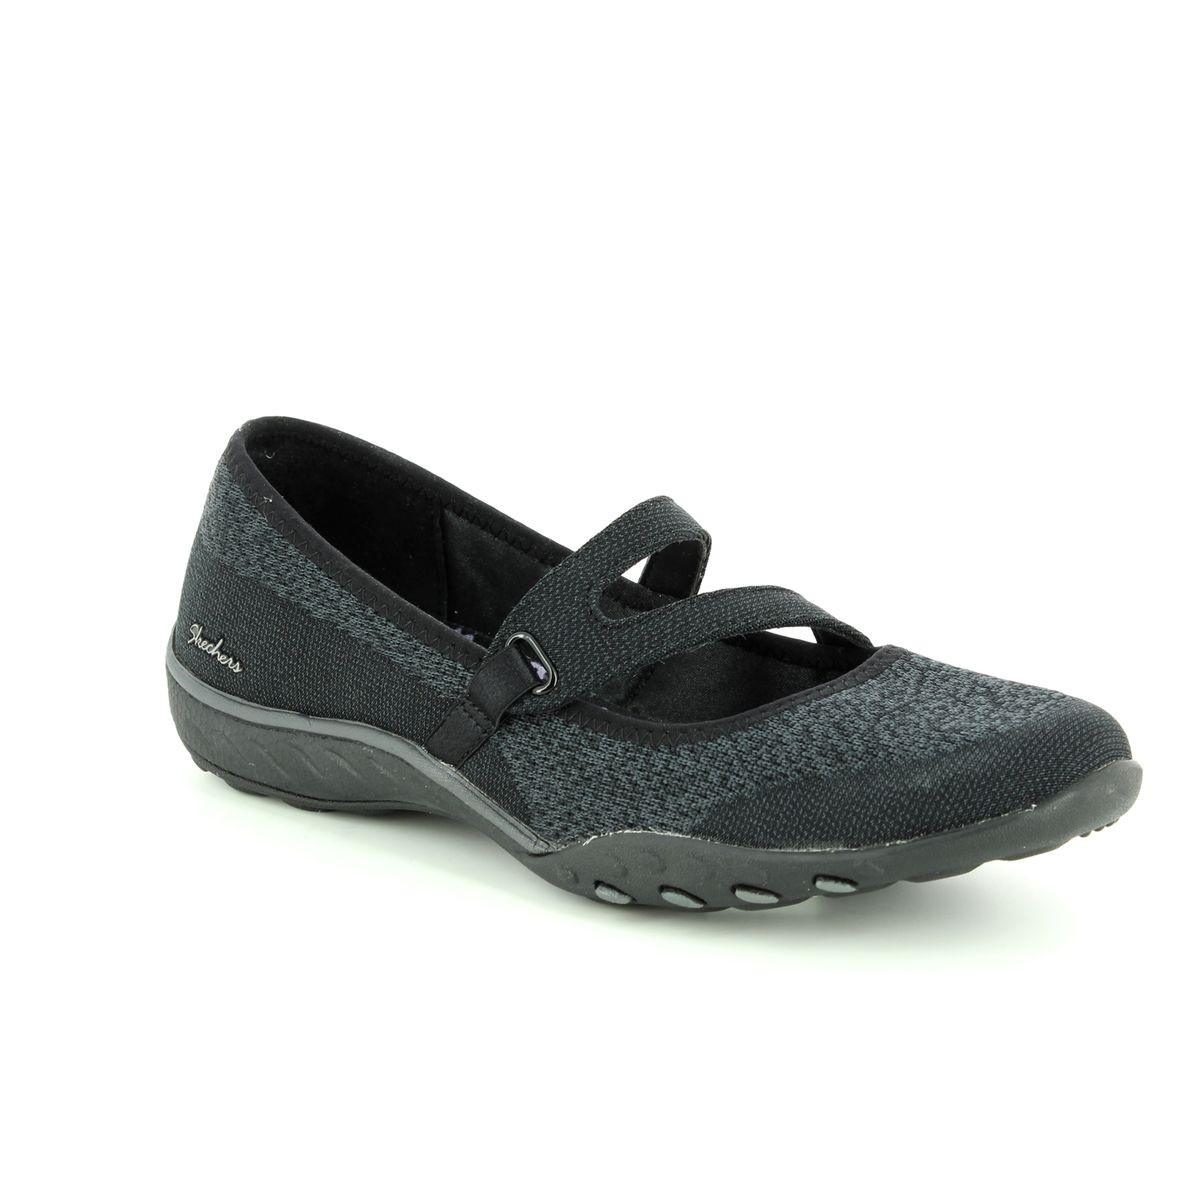 brand new 17a9b 7217d Skechers Trainers - Black - 23005 LUCKY LADY